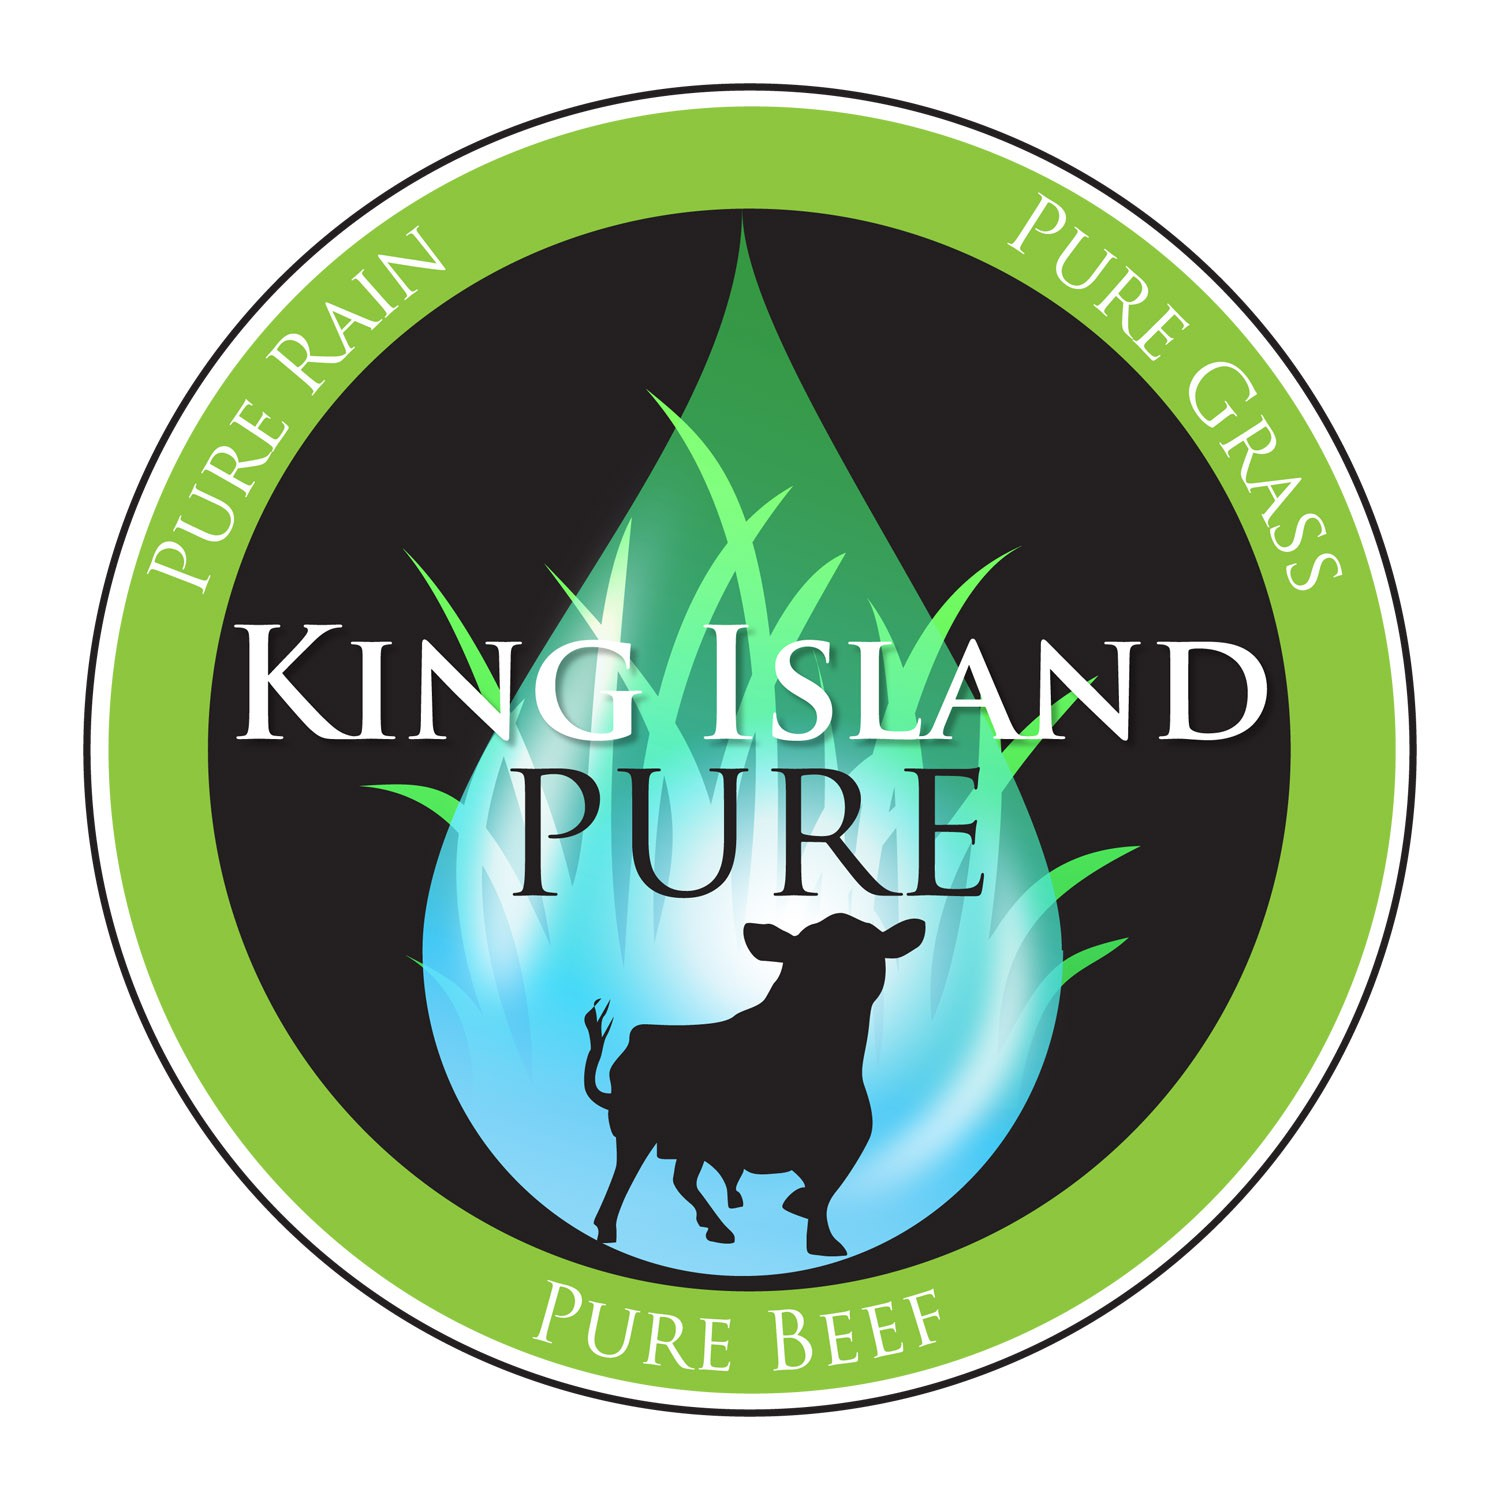 King Island Pure needs a new logo and business card